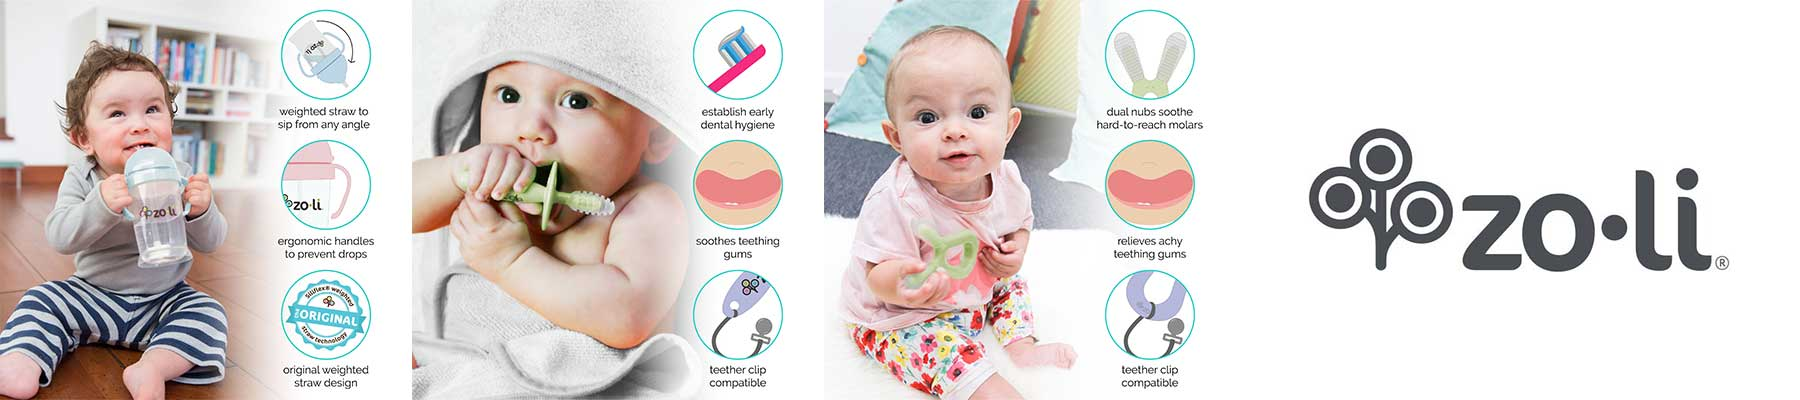 Zoli Products for Babies & Kids